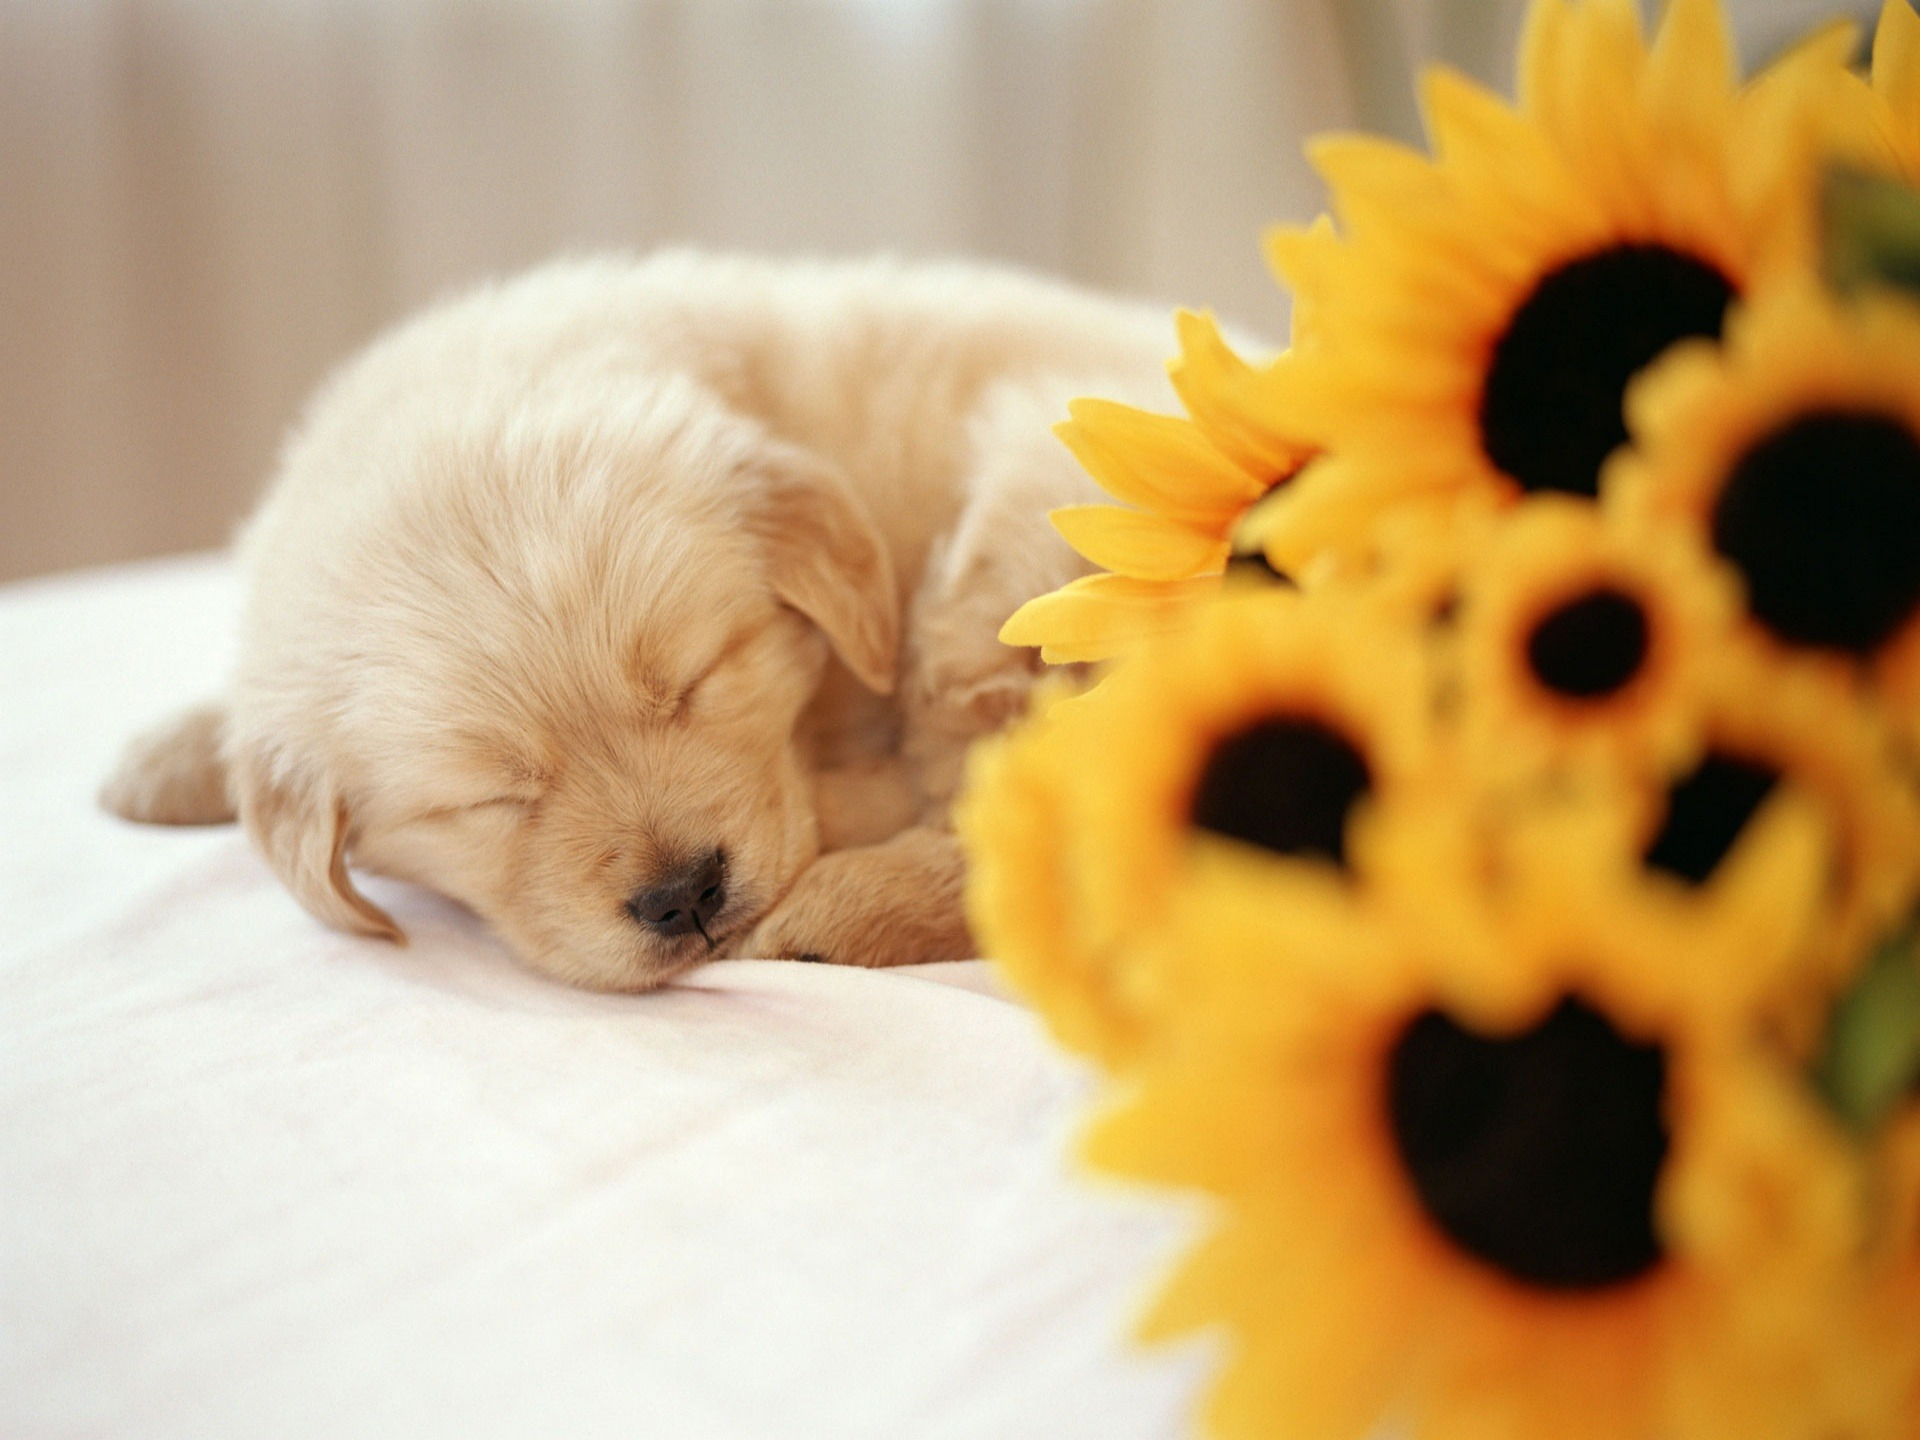 Sleeping Puppy Wallpaper Dogs Animals Wallpapers